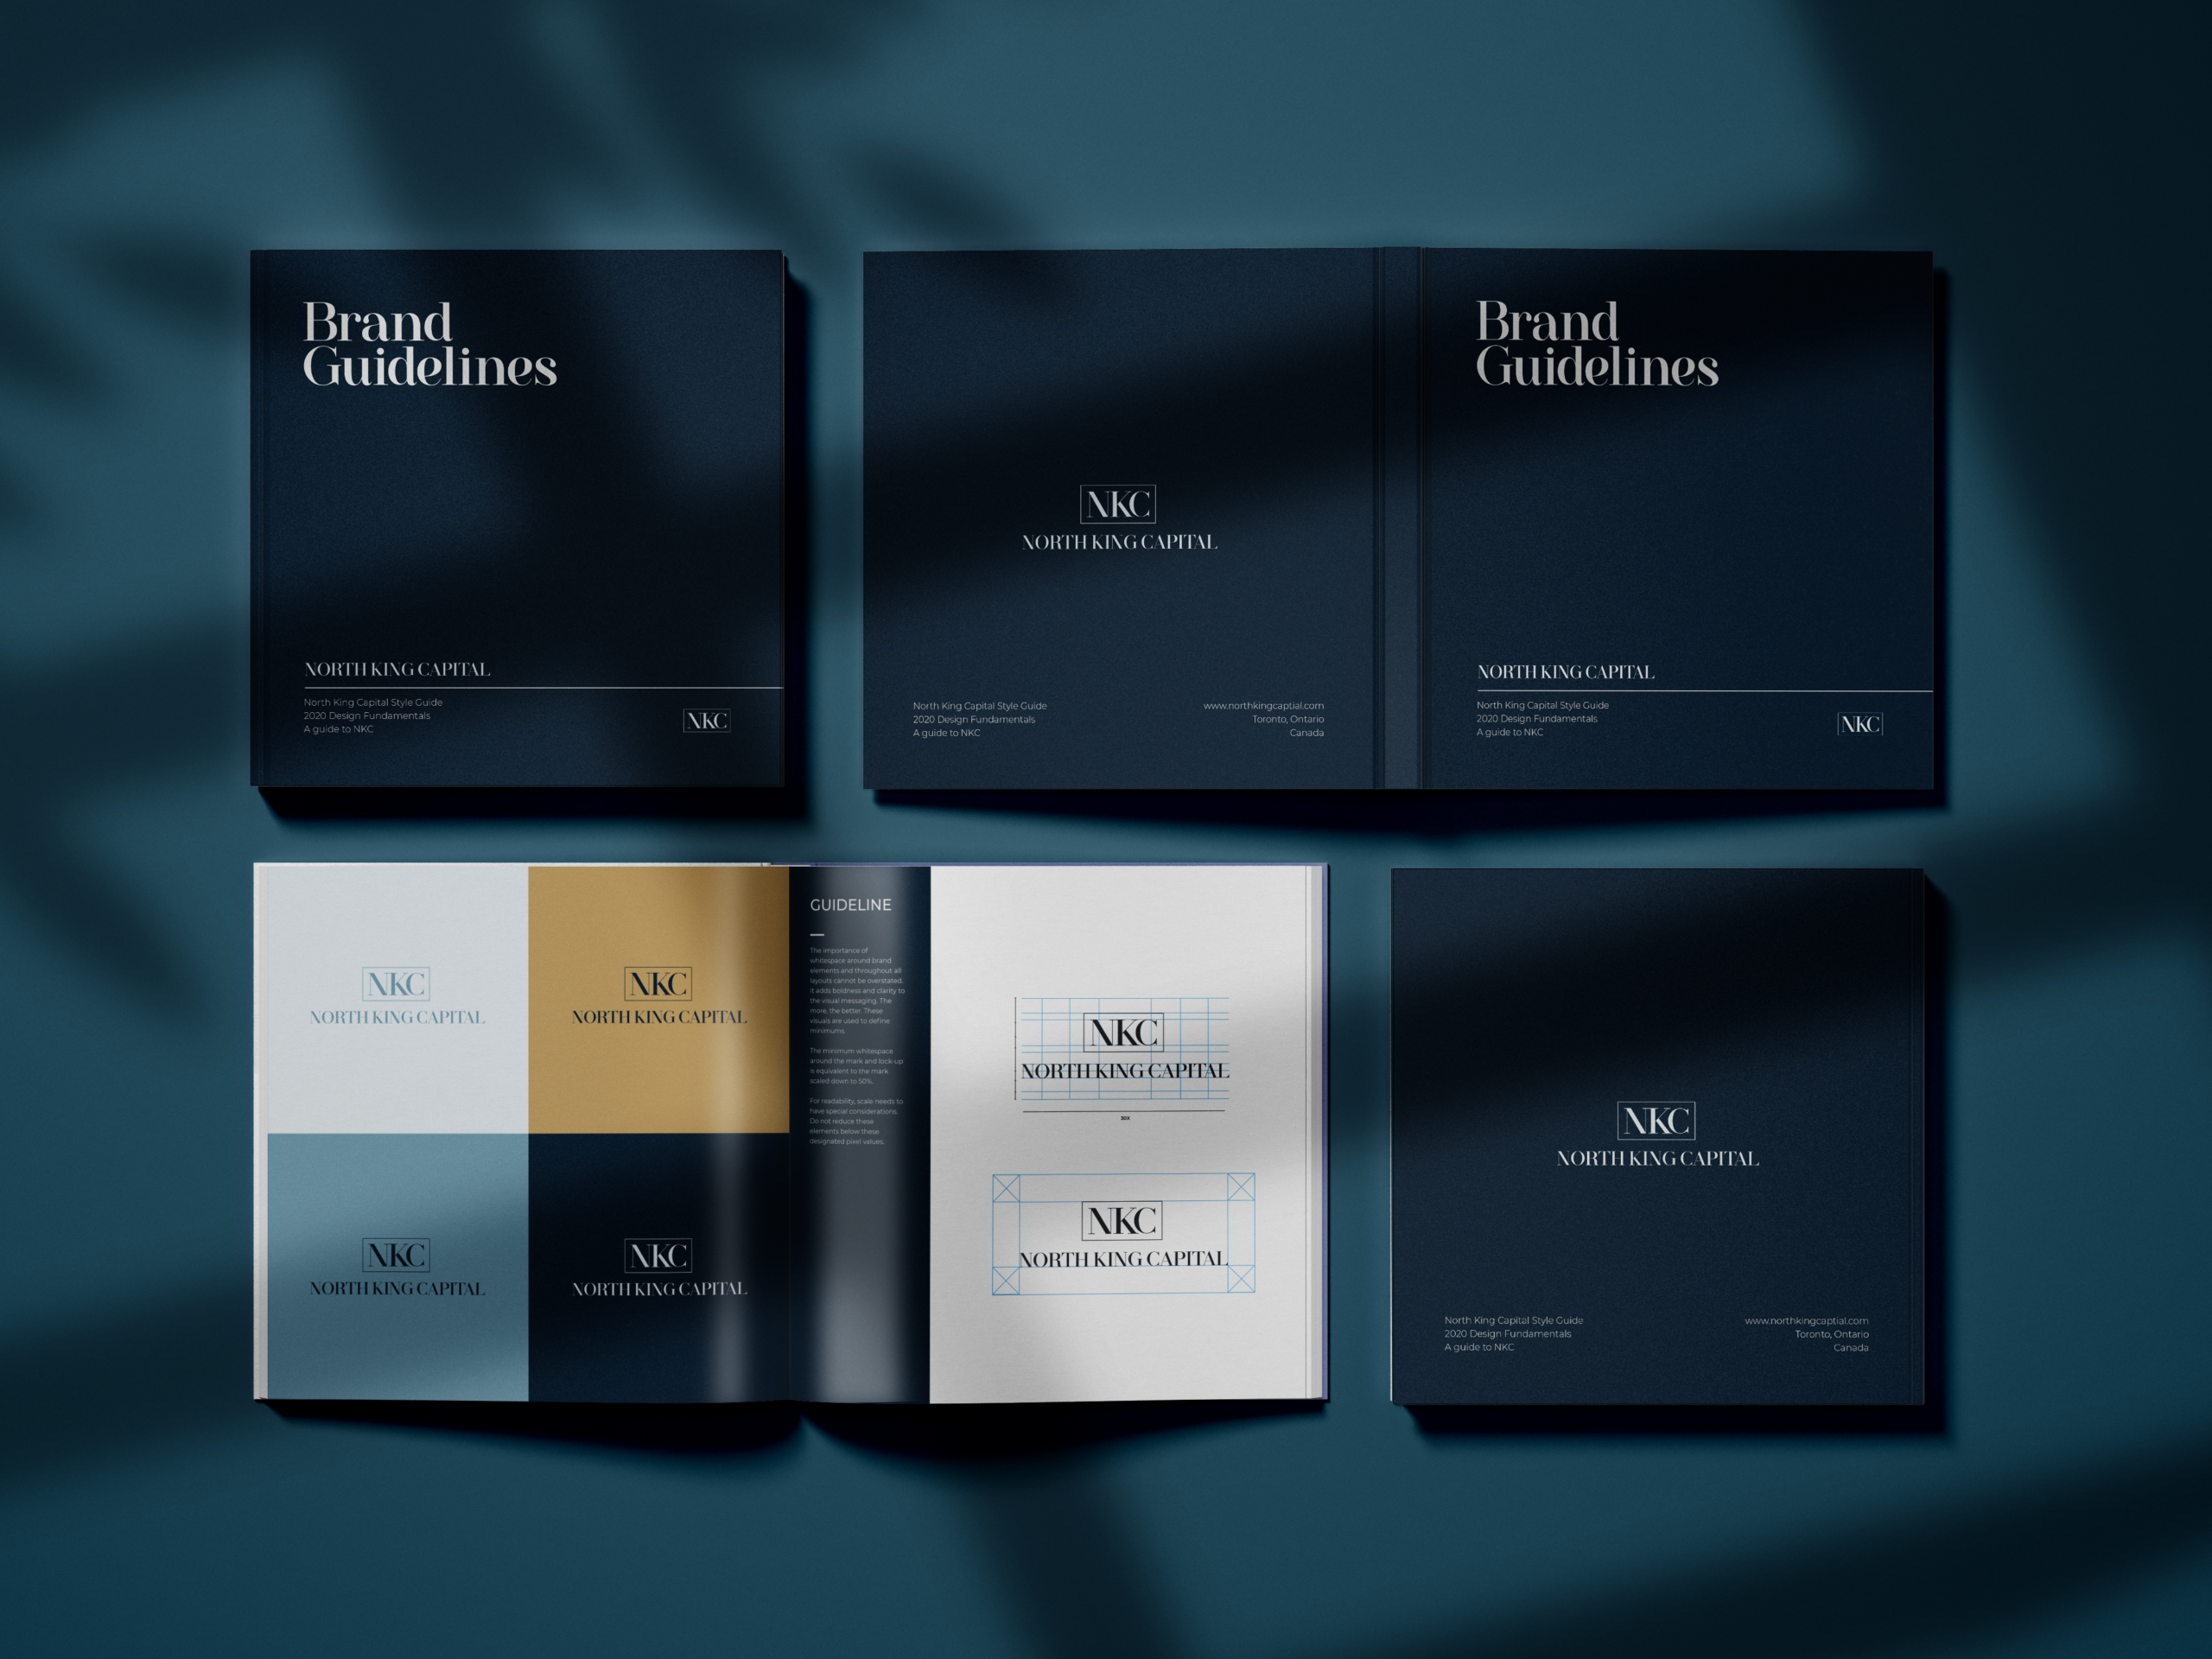 Ace Digital Designed Brand Guidelines for North King Capital